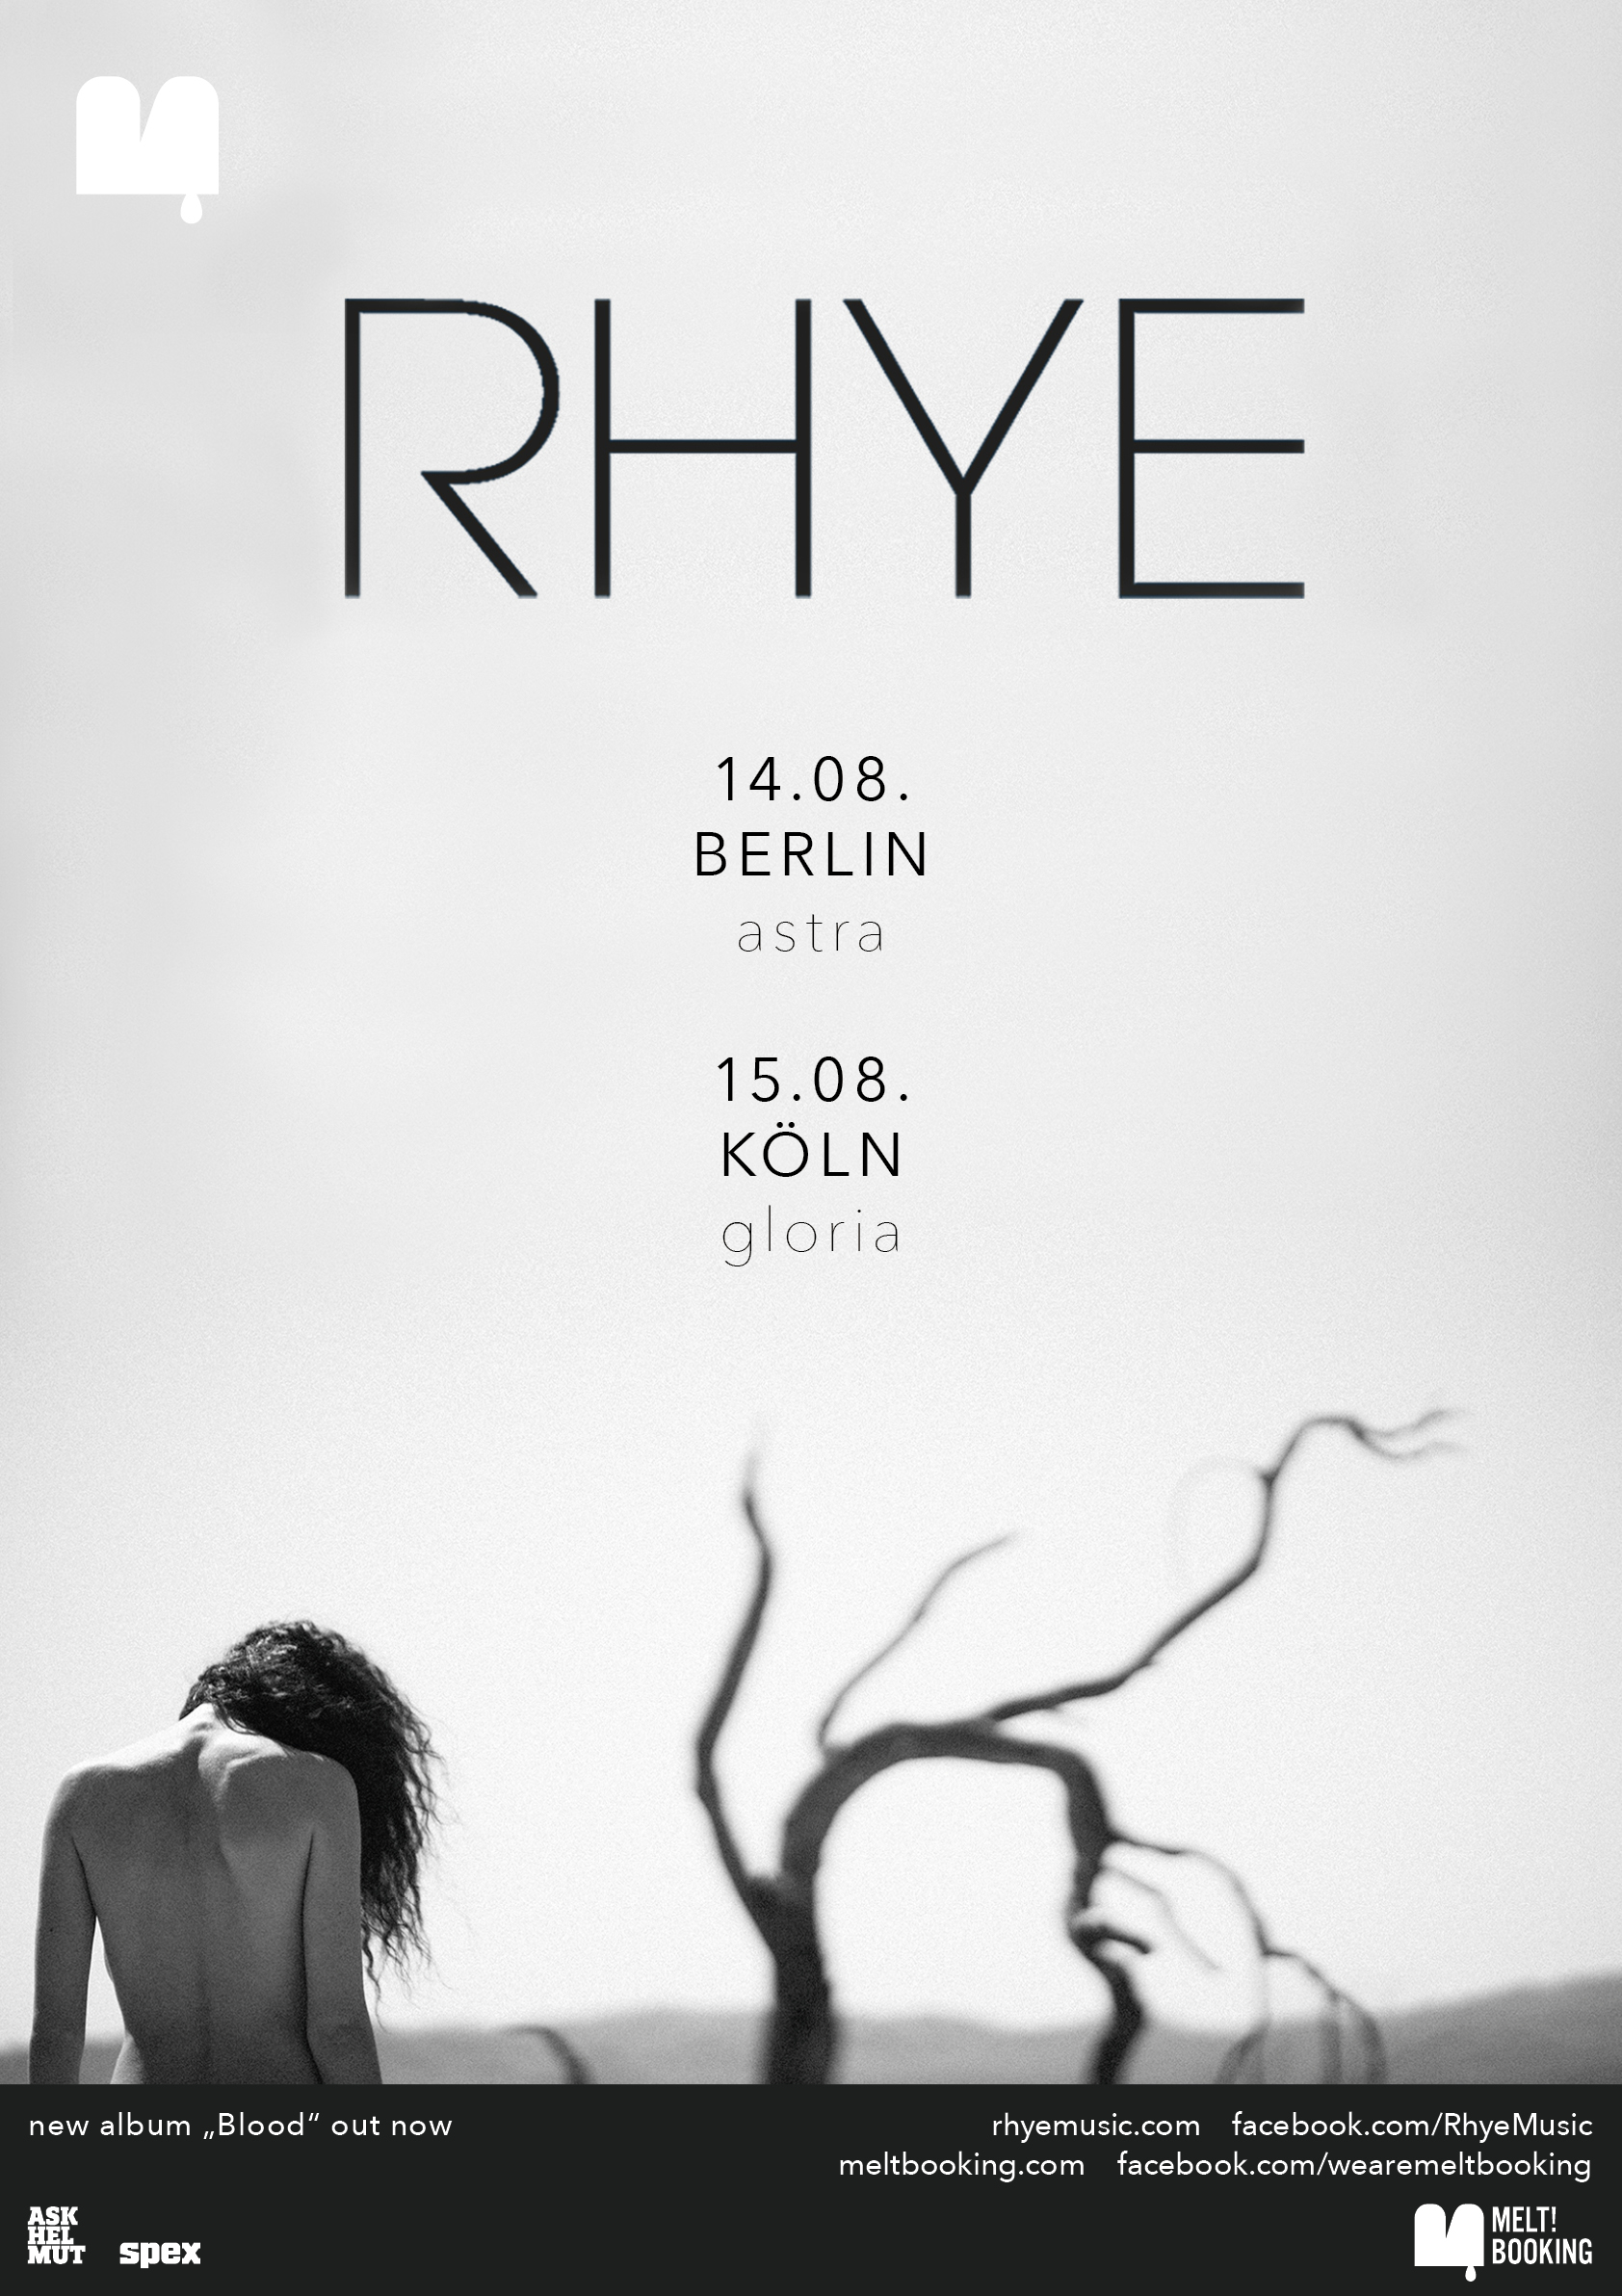 Preview: RHYE